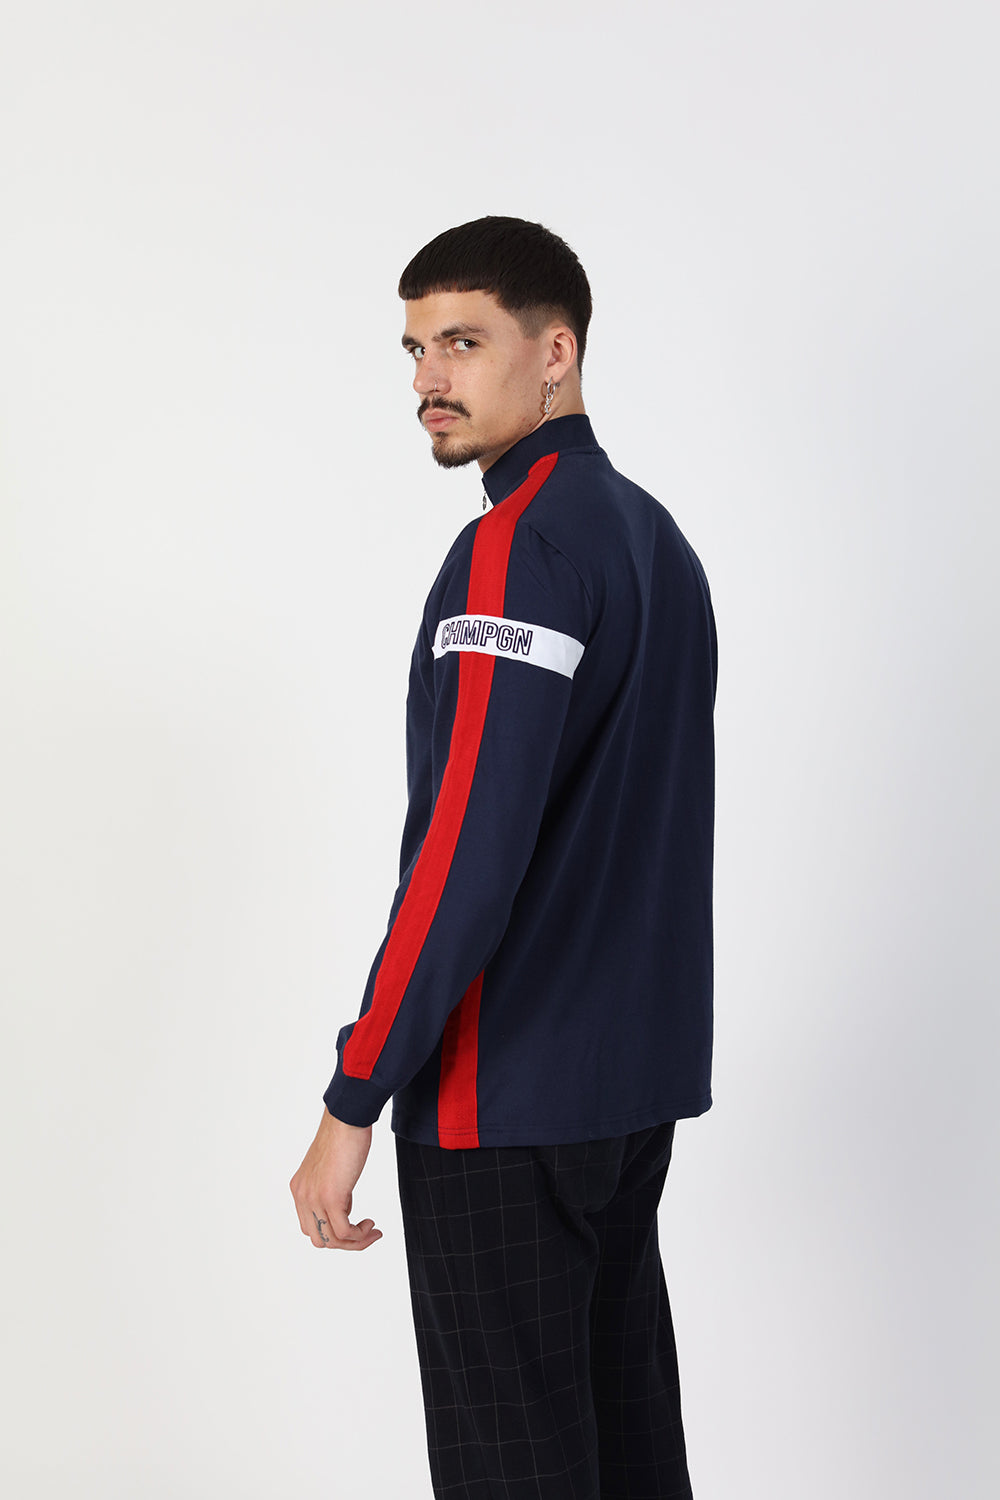 CHMPGN X LEJEUNE CLUB - NAVY/RED